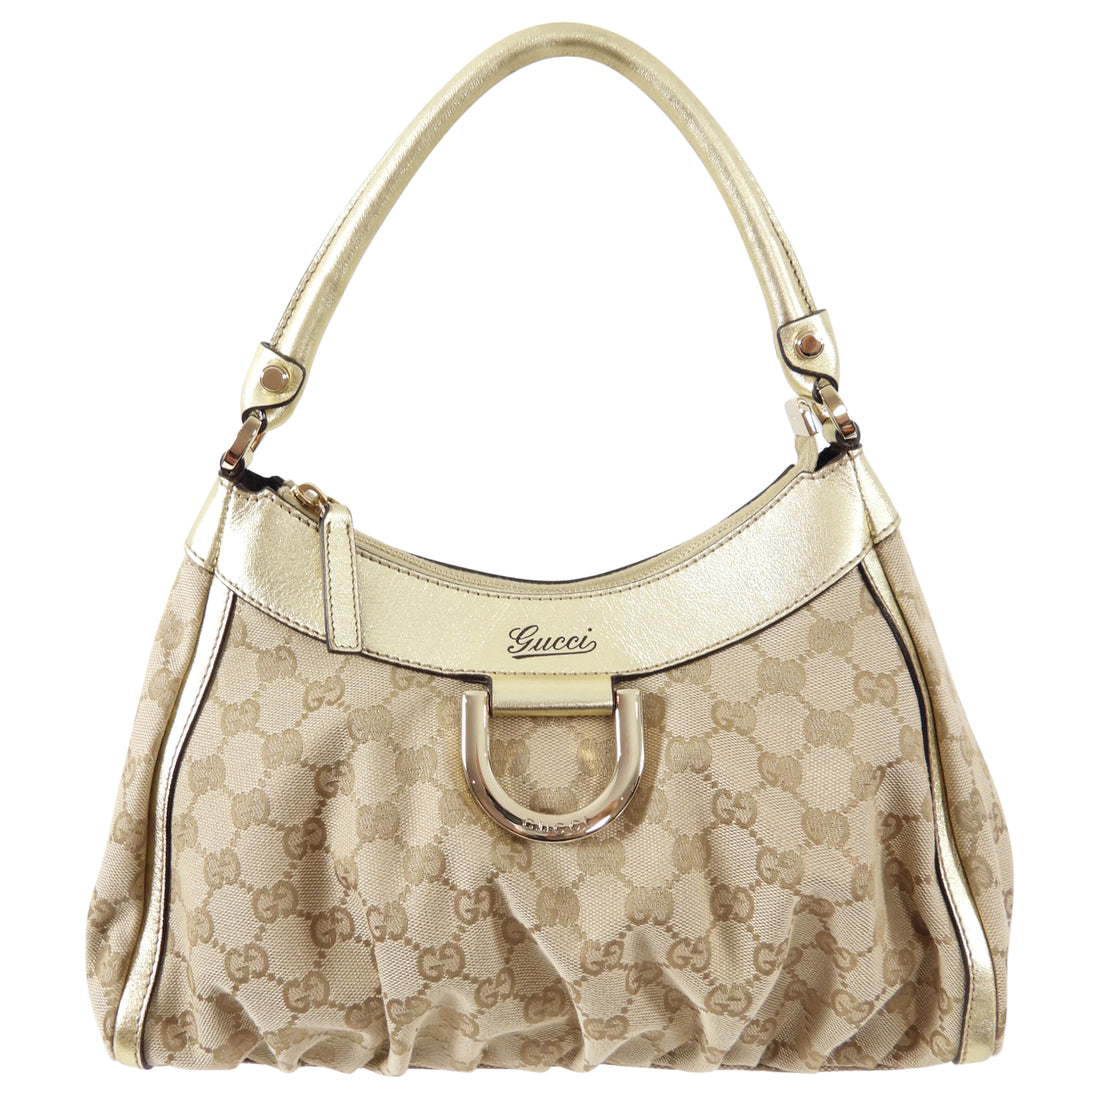 Gucci Gold Monogram Canvas Small Hobo Bag